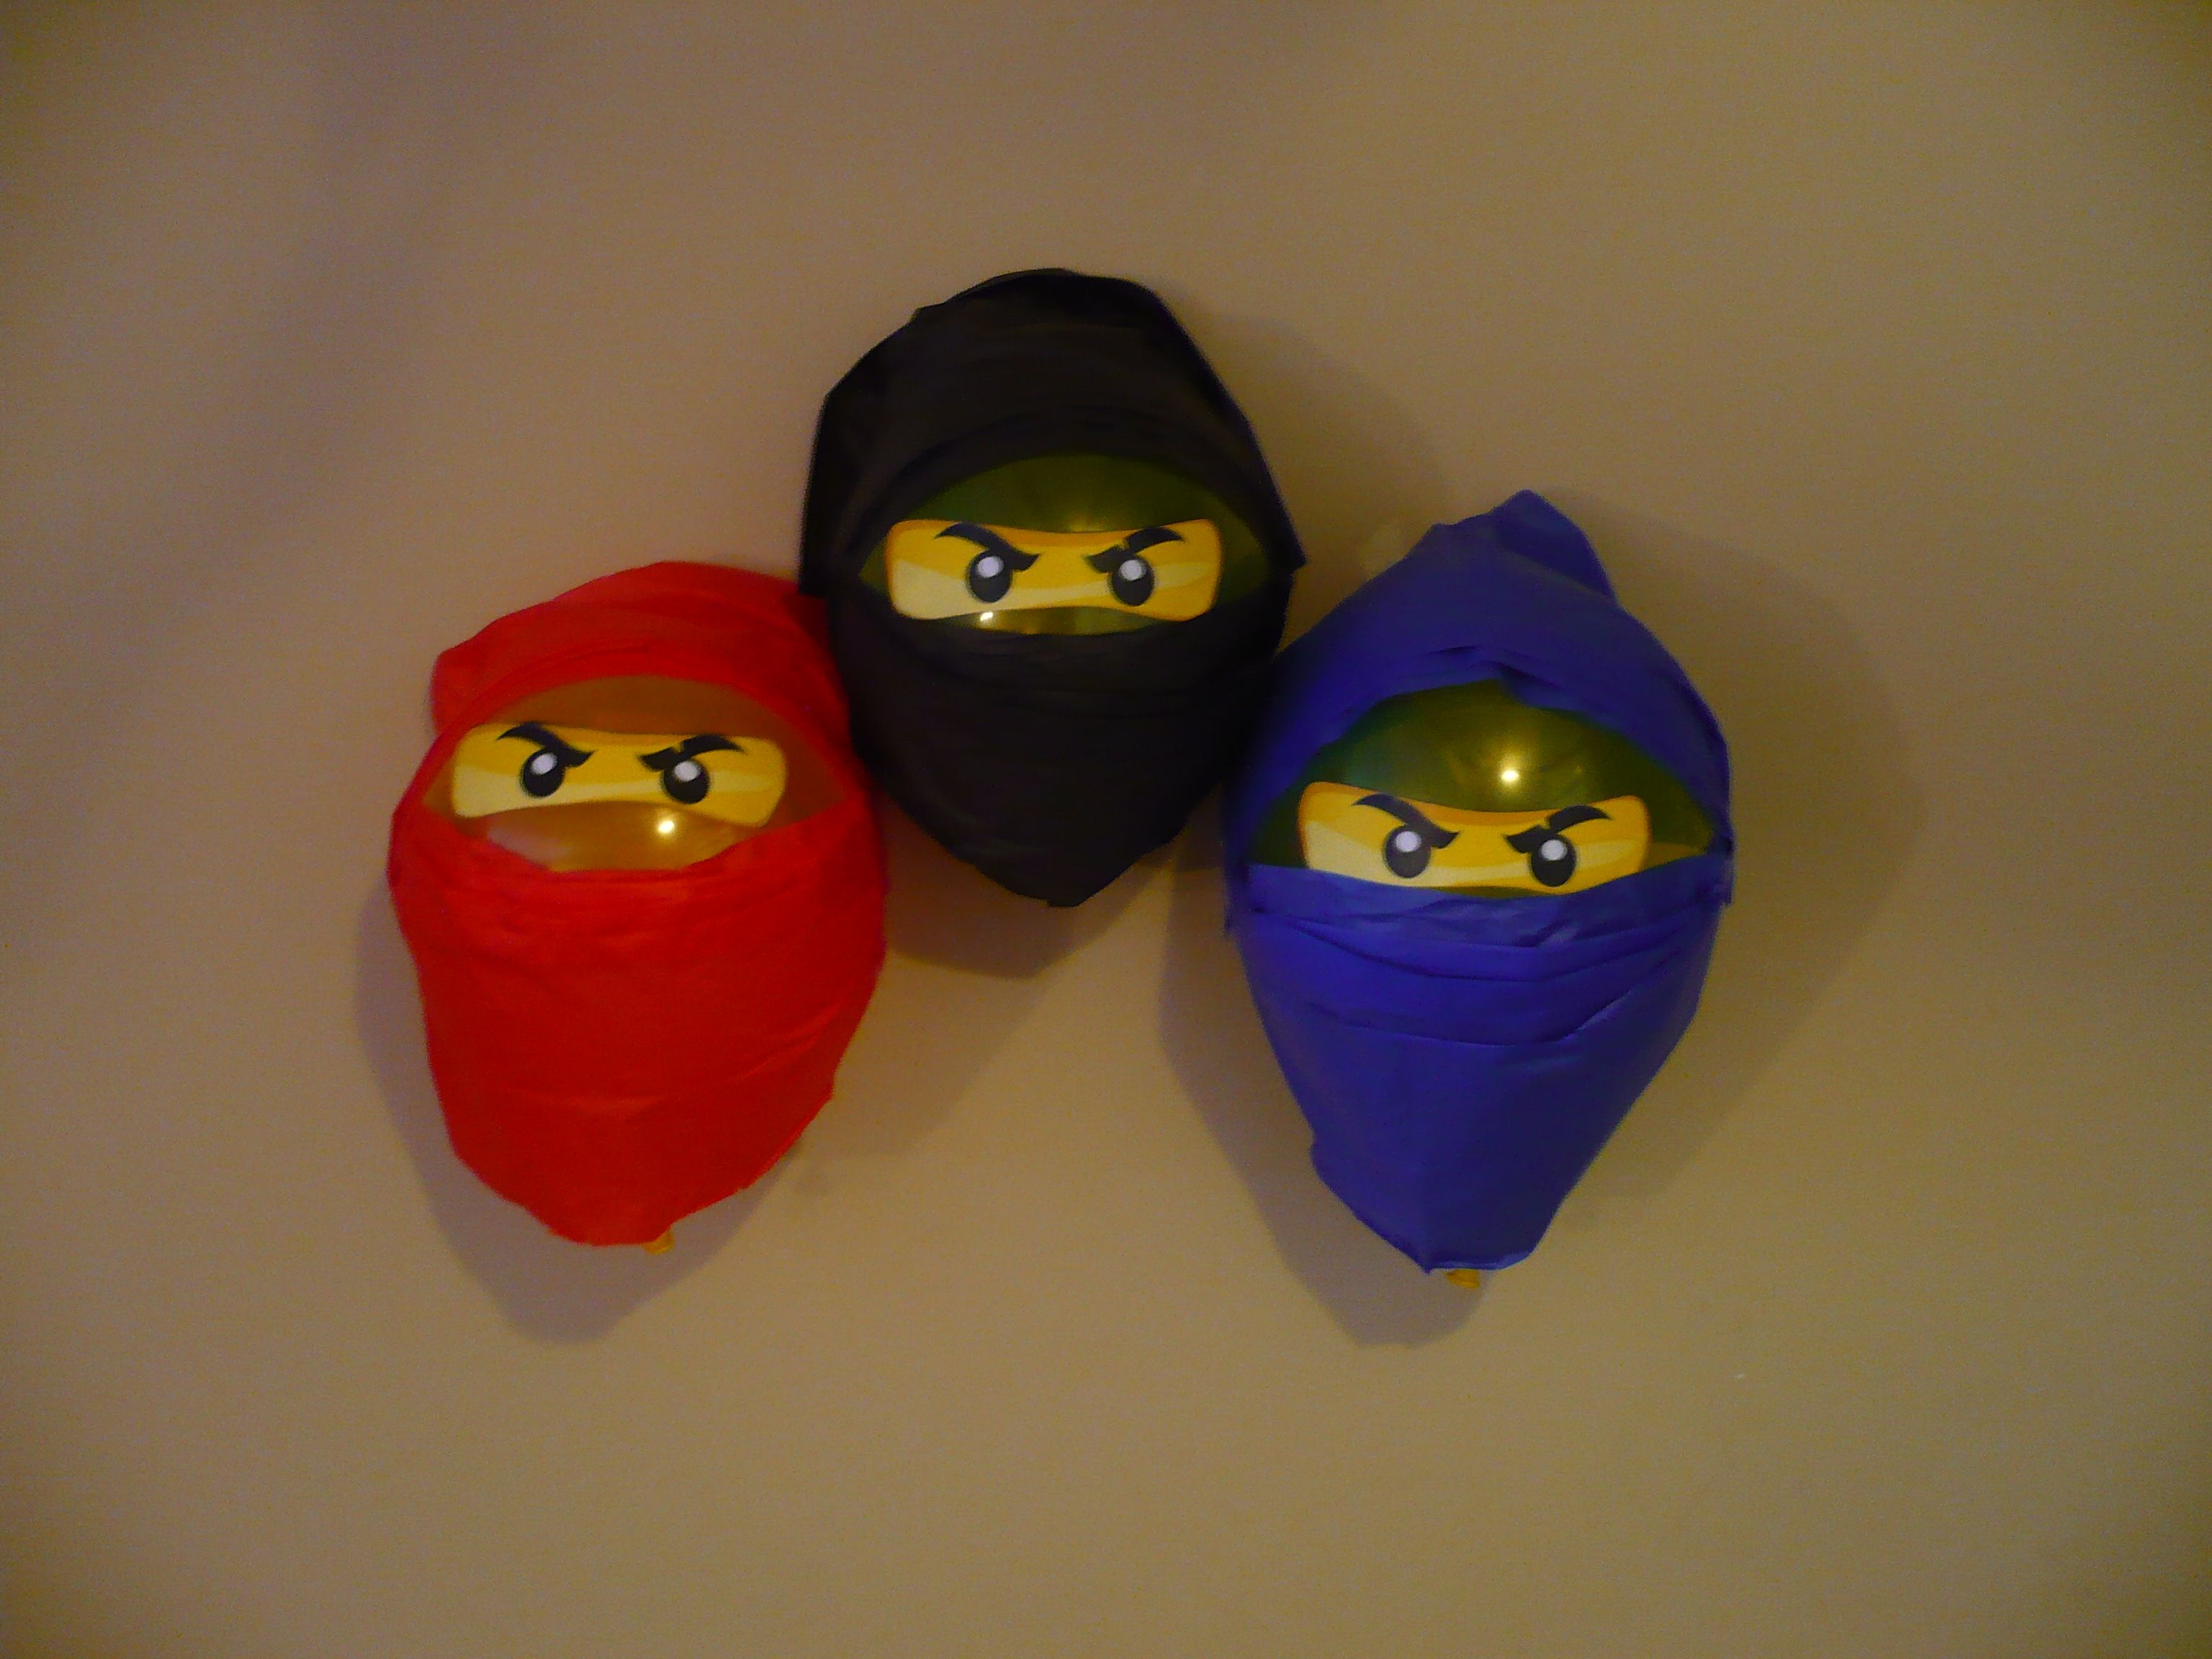 Lego Ninjago Balloons  A Cheaper Alternative To The Beach Balls